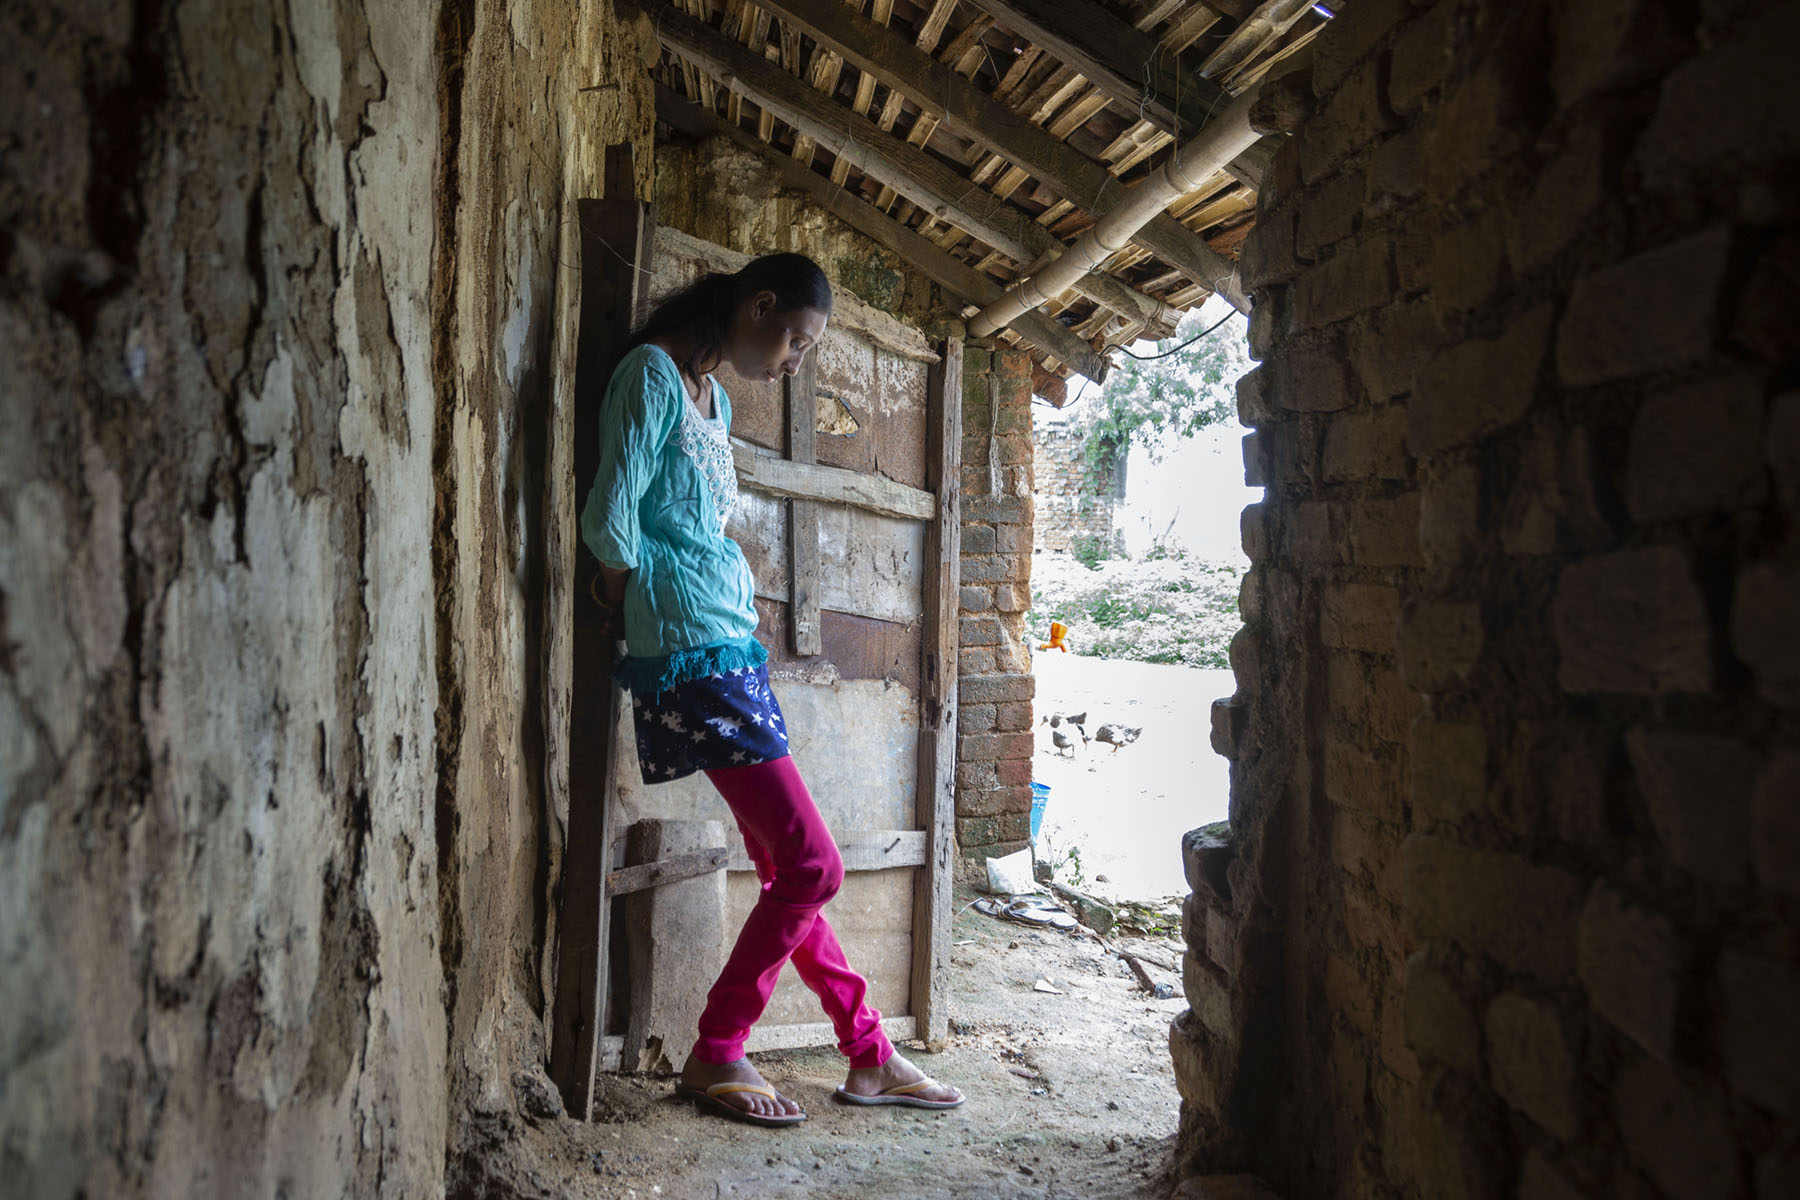 Roji is standing with hands behind her back, leaning against a wooden door that looks out onto the street. She is looking down at her feet wearing in slippers with yellow straps. She wears a magenta churidar and blue kameez.